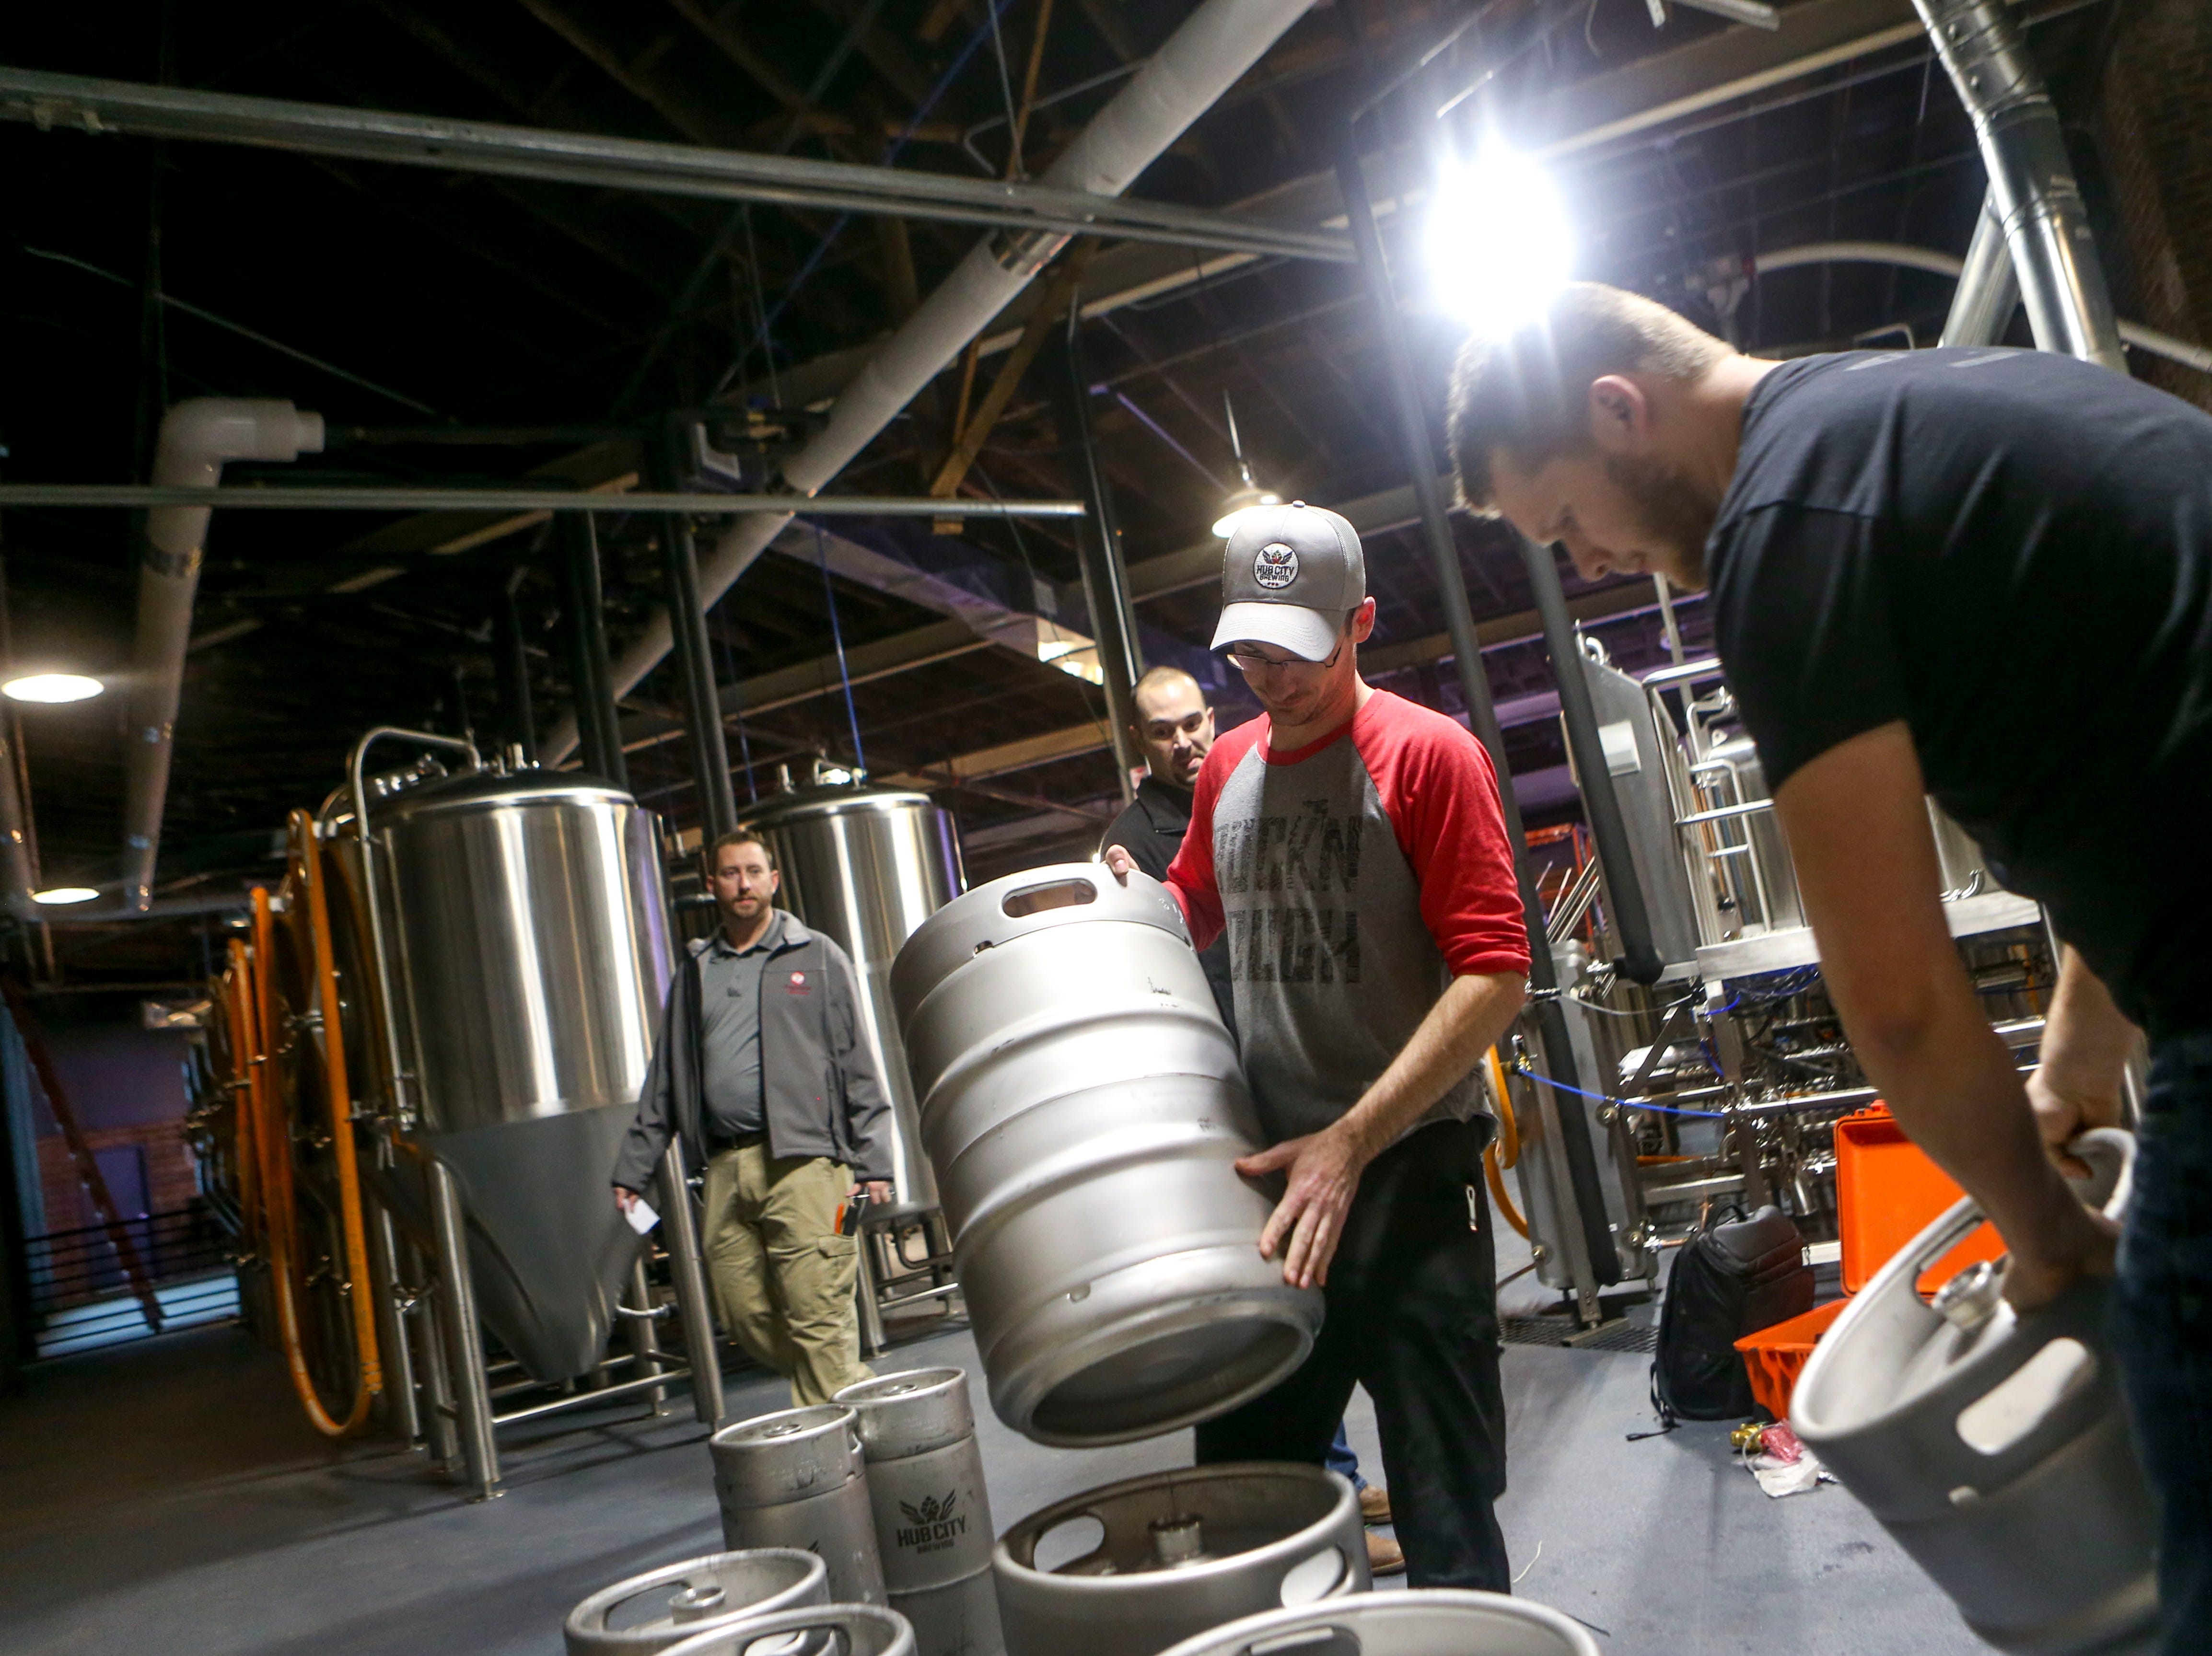 Michael Lorens, right, with American Beer Equipment, trains Hub City master brewer Cody Stooksberry, left, on preparing kegs at Hub City Brewing in Jackson, Tenn., on Wednesday, Feb. 6, 2019.